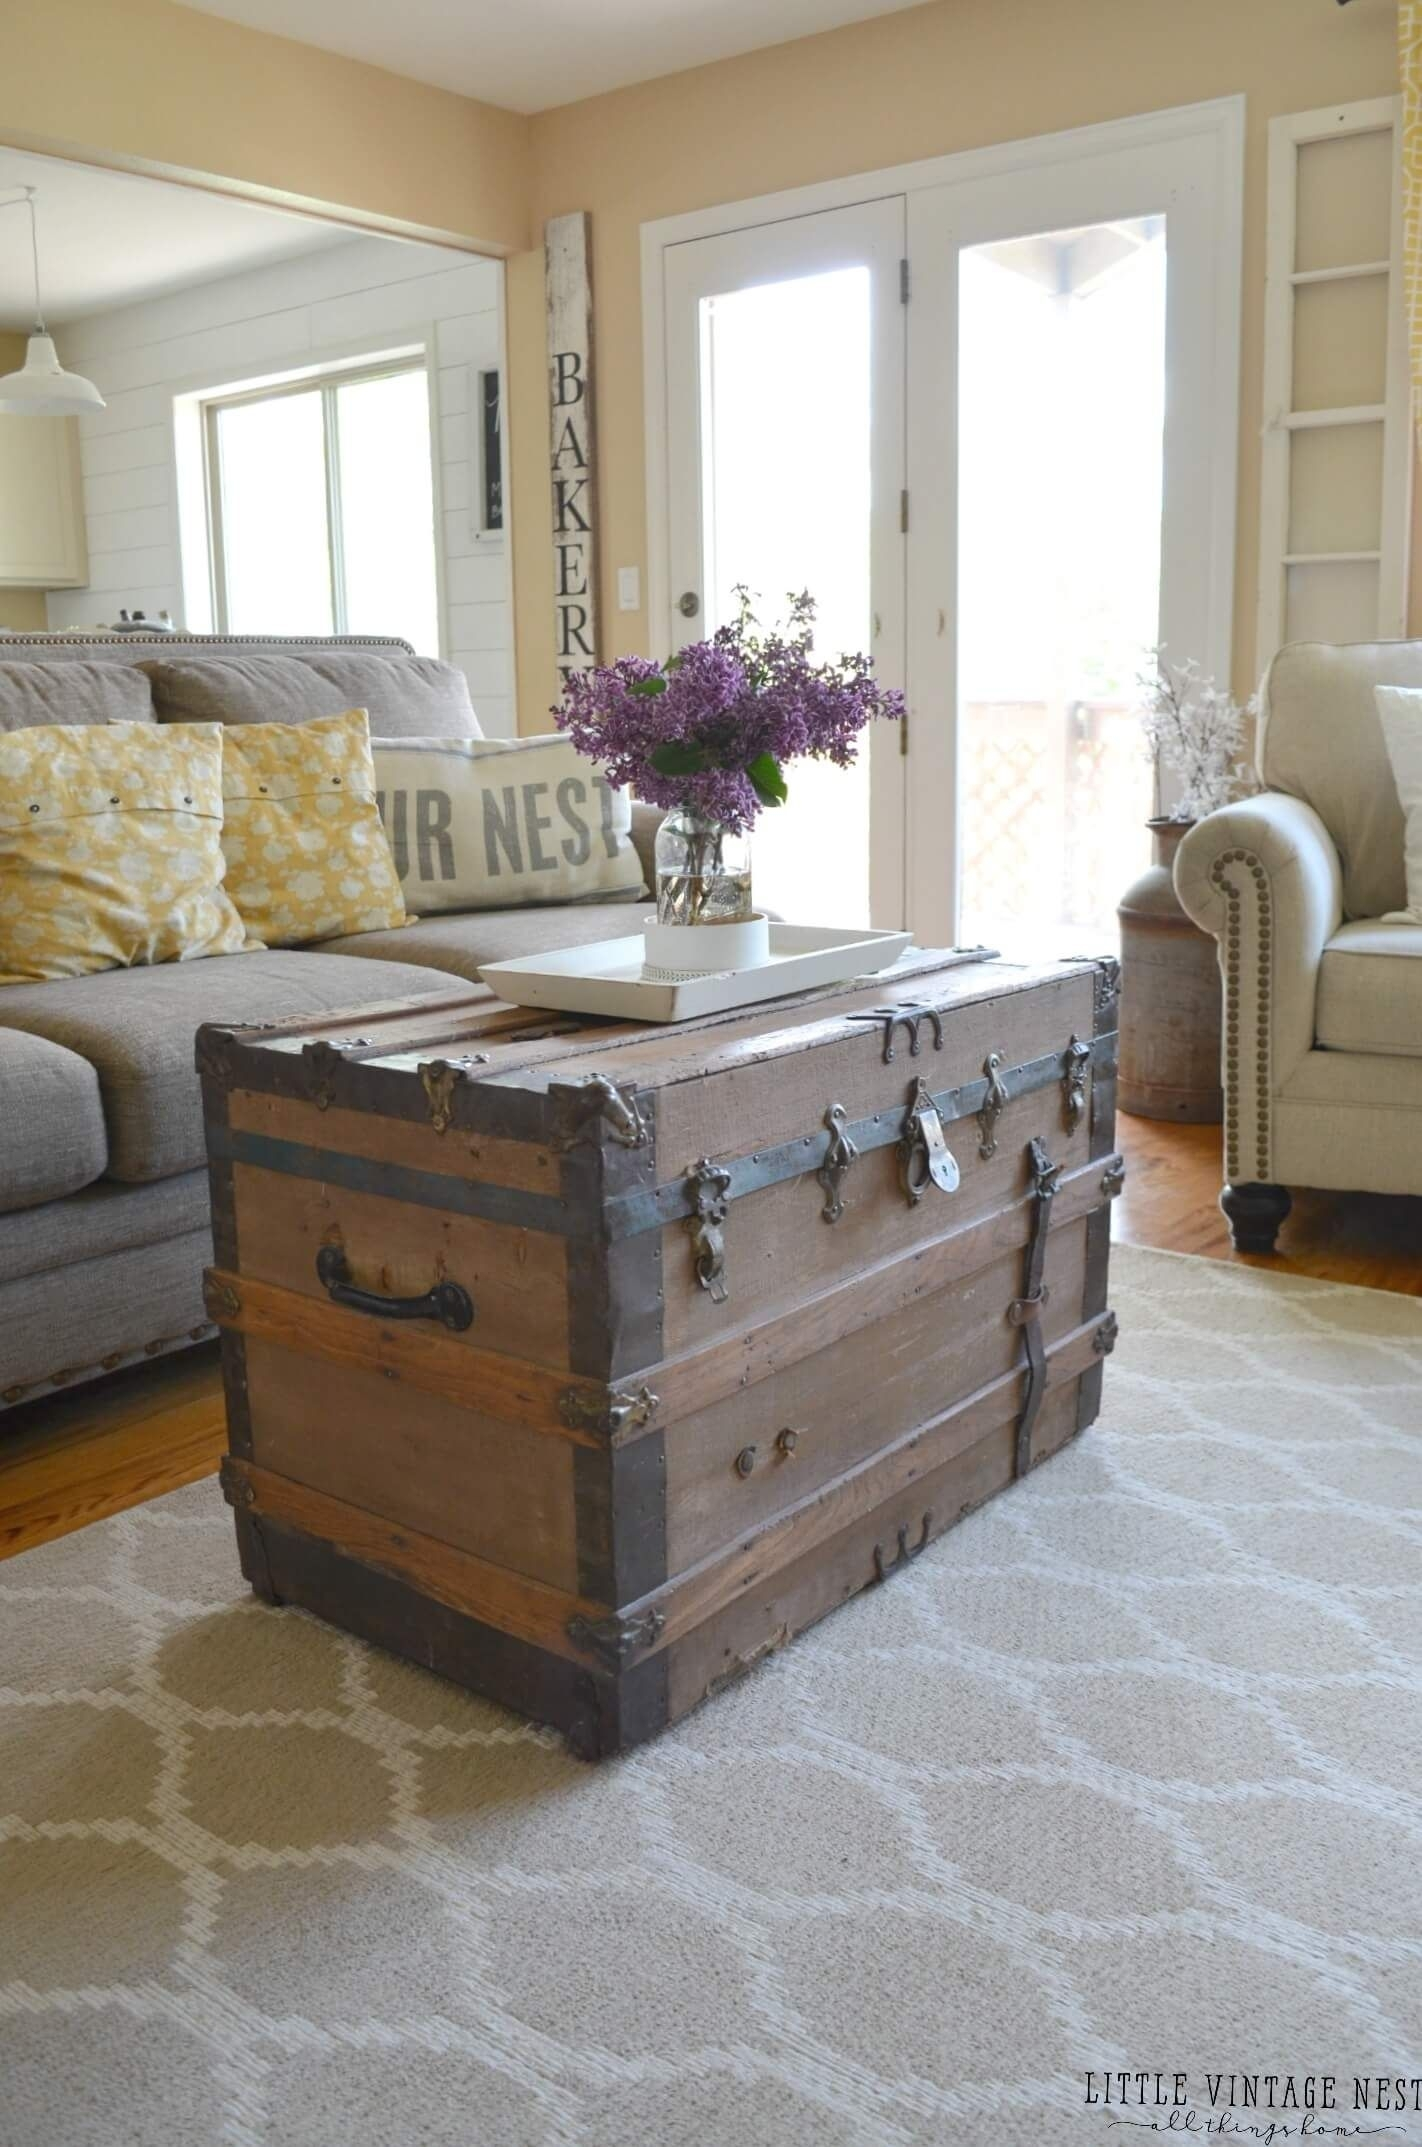 35 Rustic Farmhouse Living Room Design And Decor Ideas For Your Home With Large Scale Chinese Farmhouse Coffee Tables (View 14 of 30)